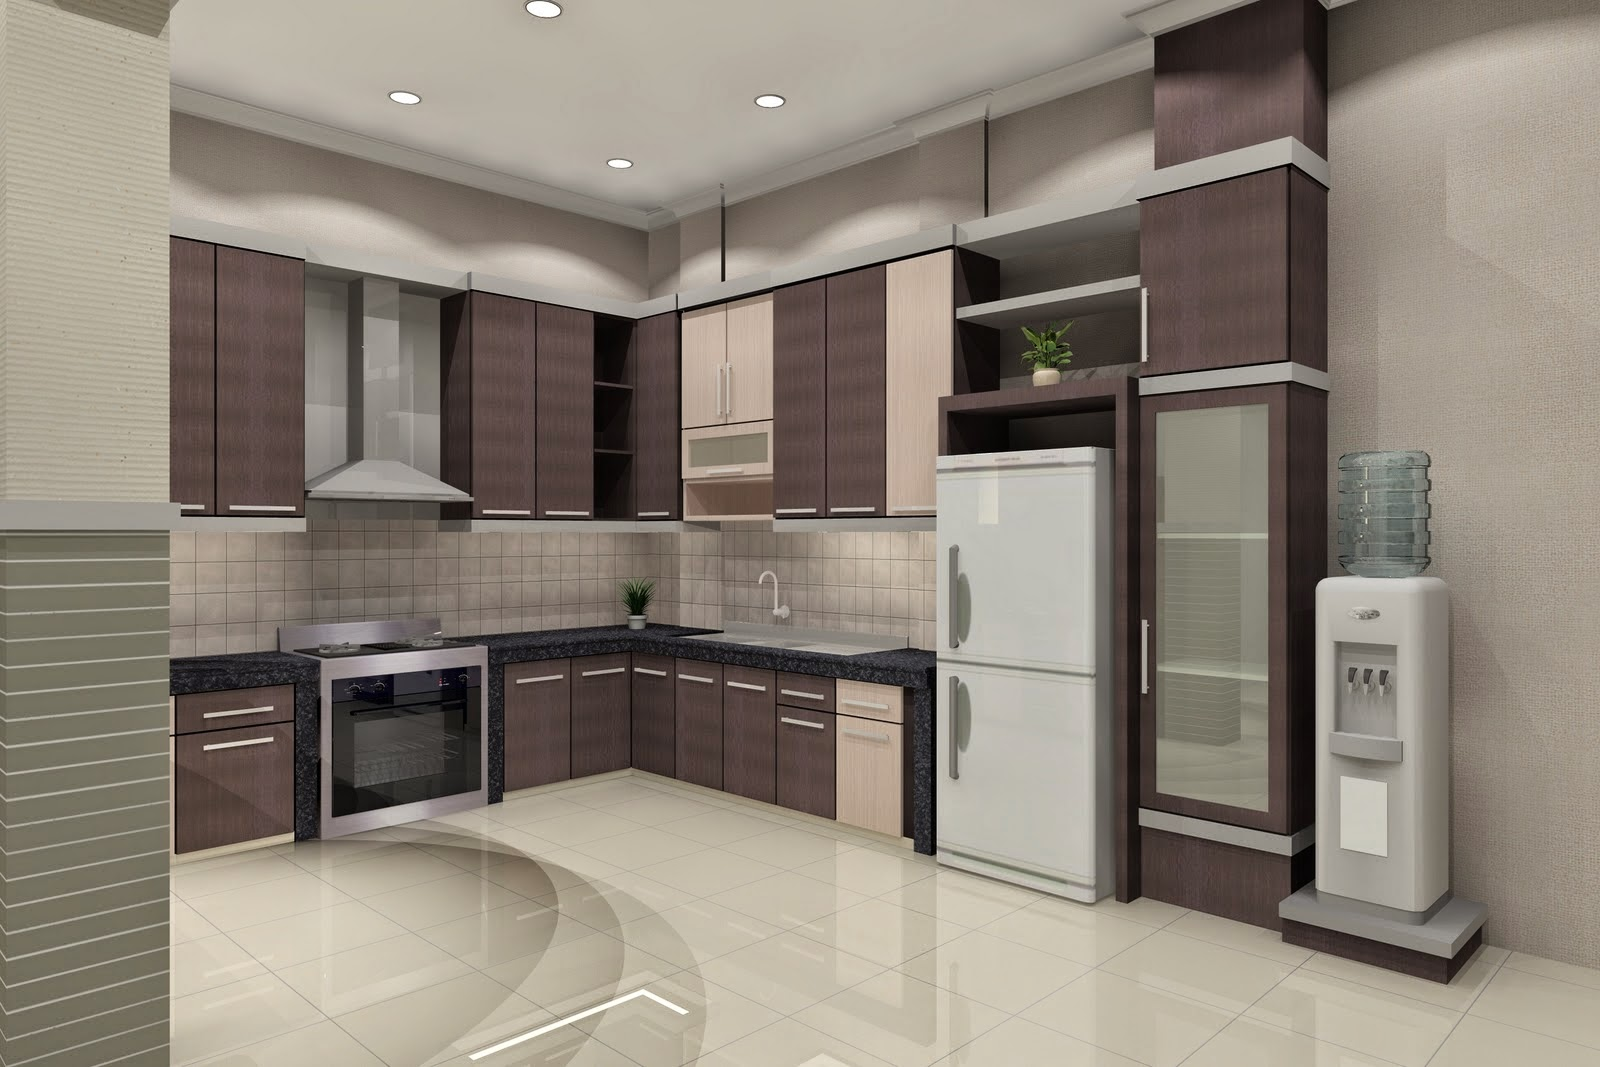 Examples of simple minimalist kitchen design new 2015